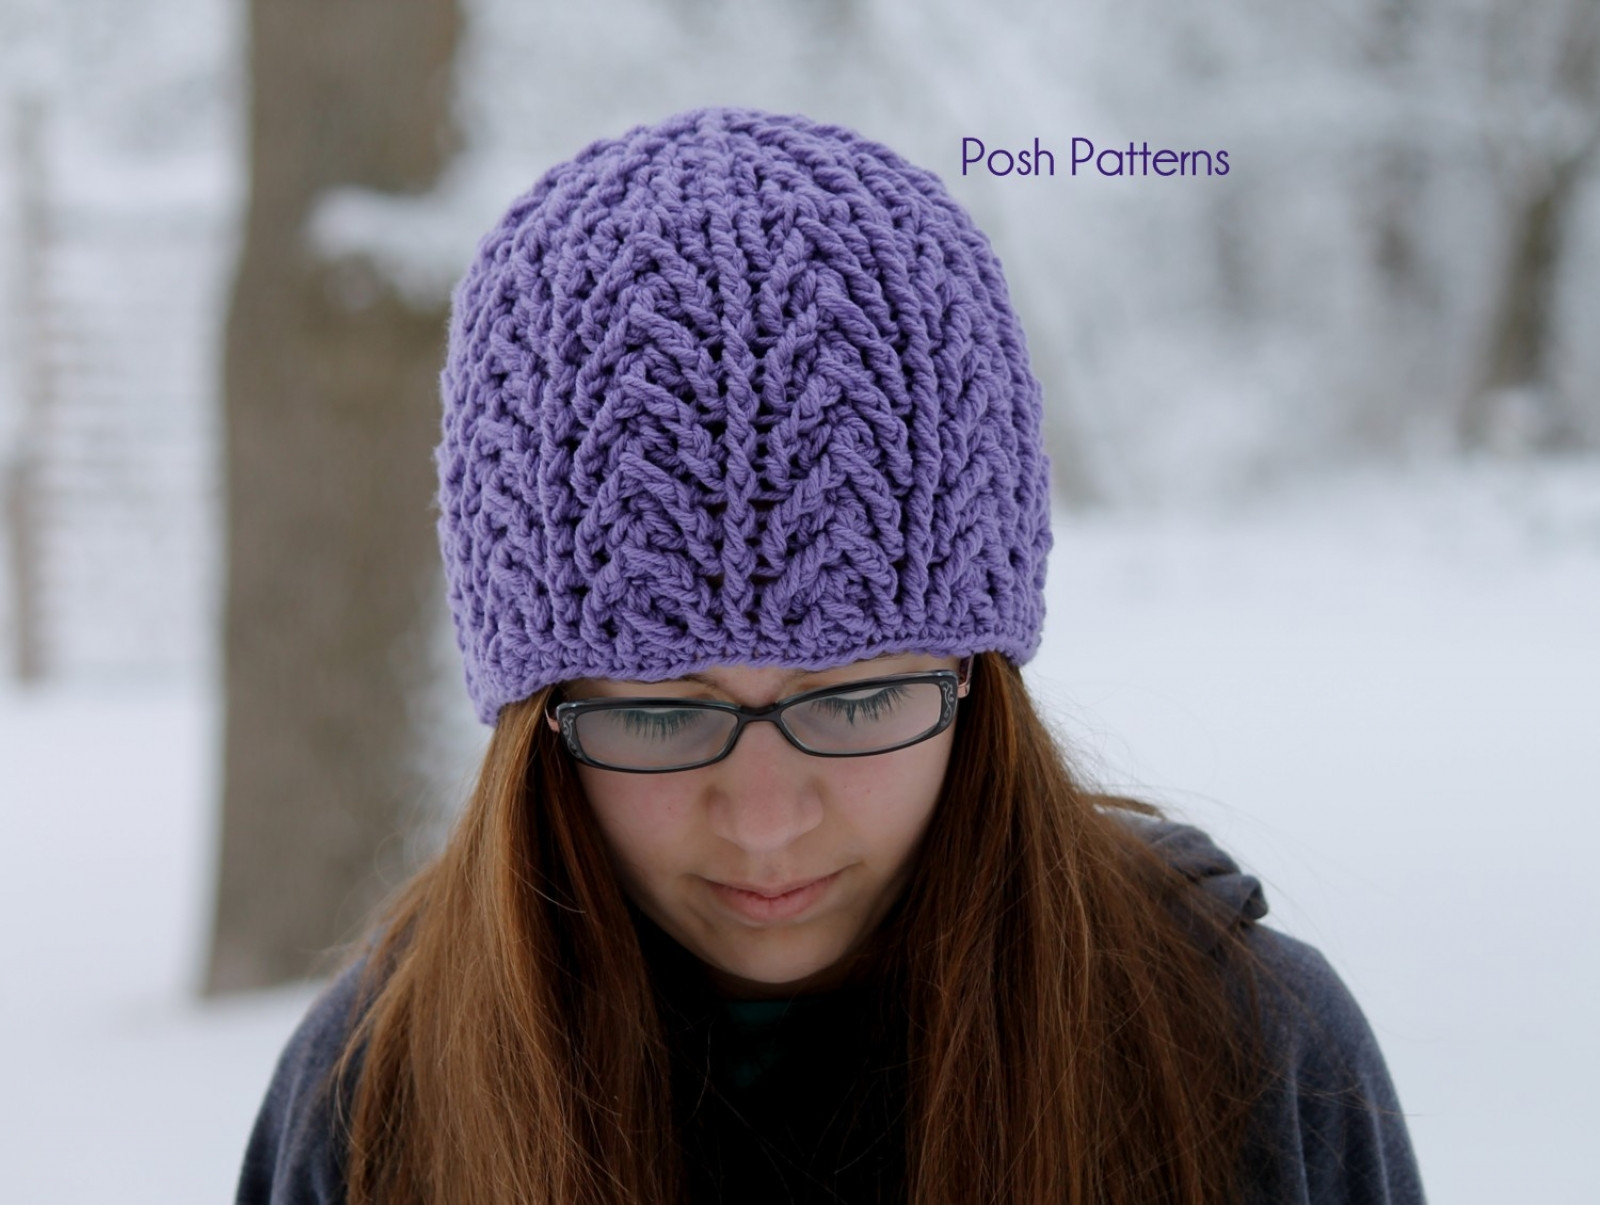 Crochet Beanie Hat Awesome Cable Hat Crochet Pattern Crochet Cable Beanie Of New 50 Images Crochet Beanie Hat